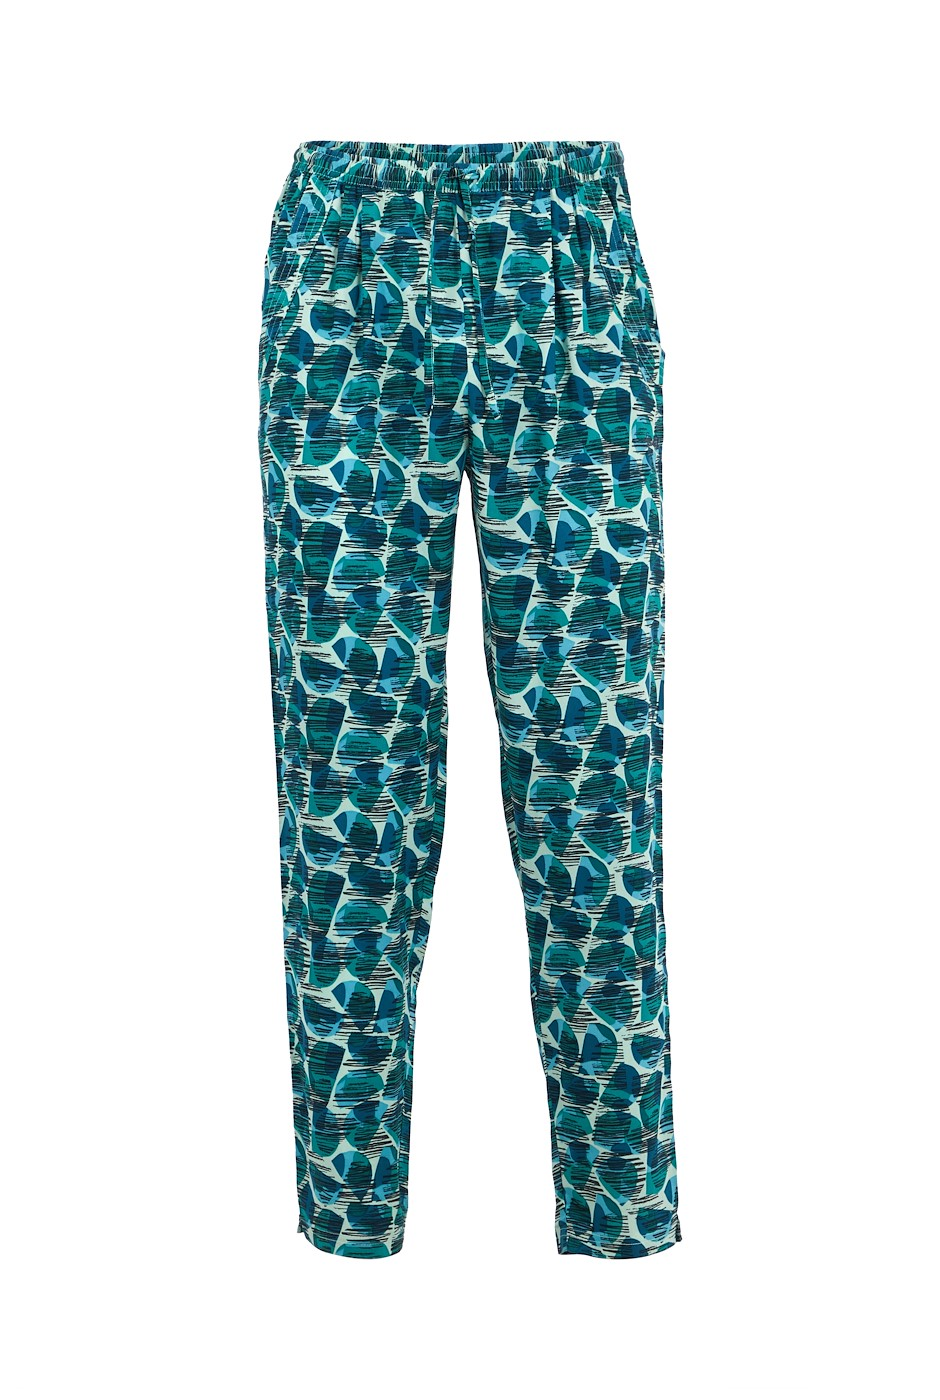 Tinto Printed Viscose Trousers Bottle Green